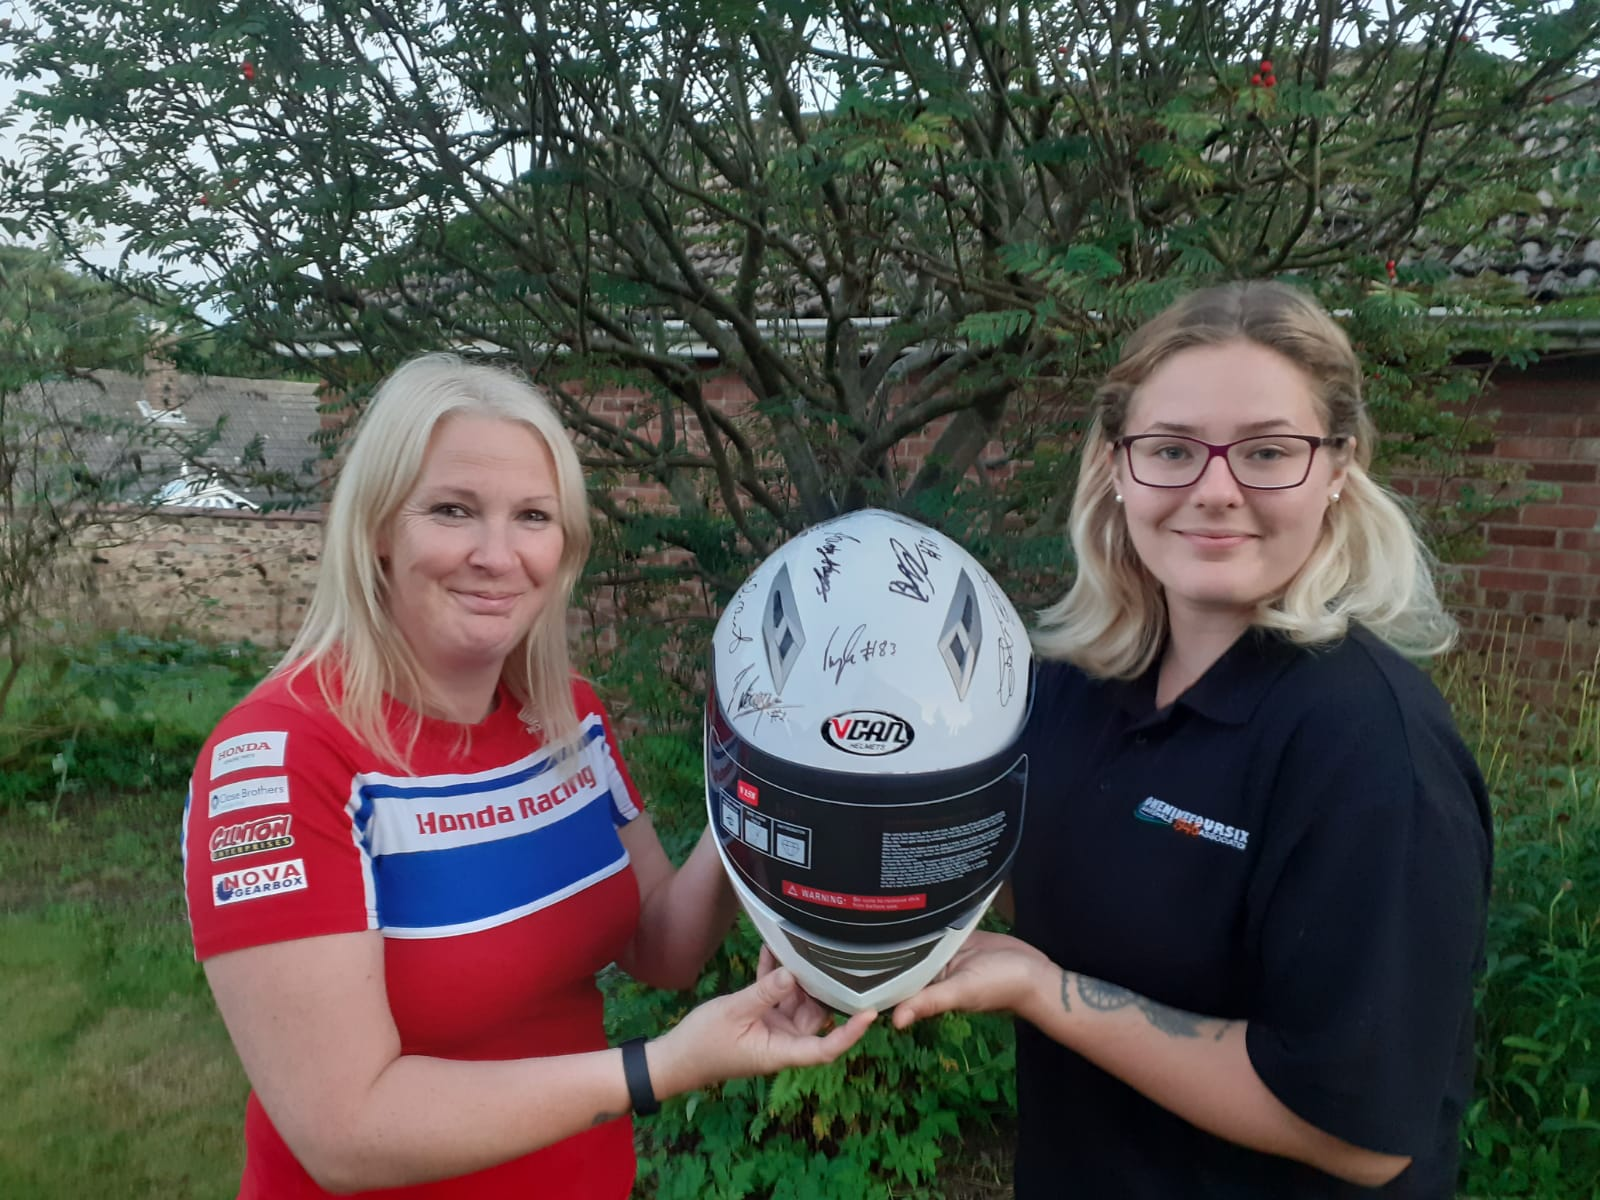 One Nine Four Six Marshals Association Hand Over Signed Helmet To Help Raise Money For CRY